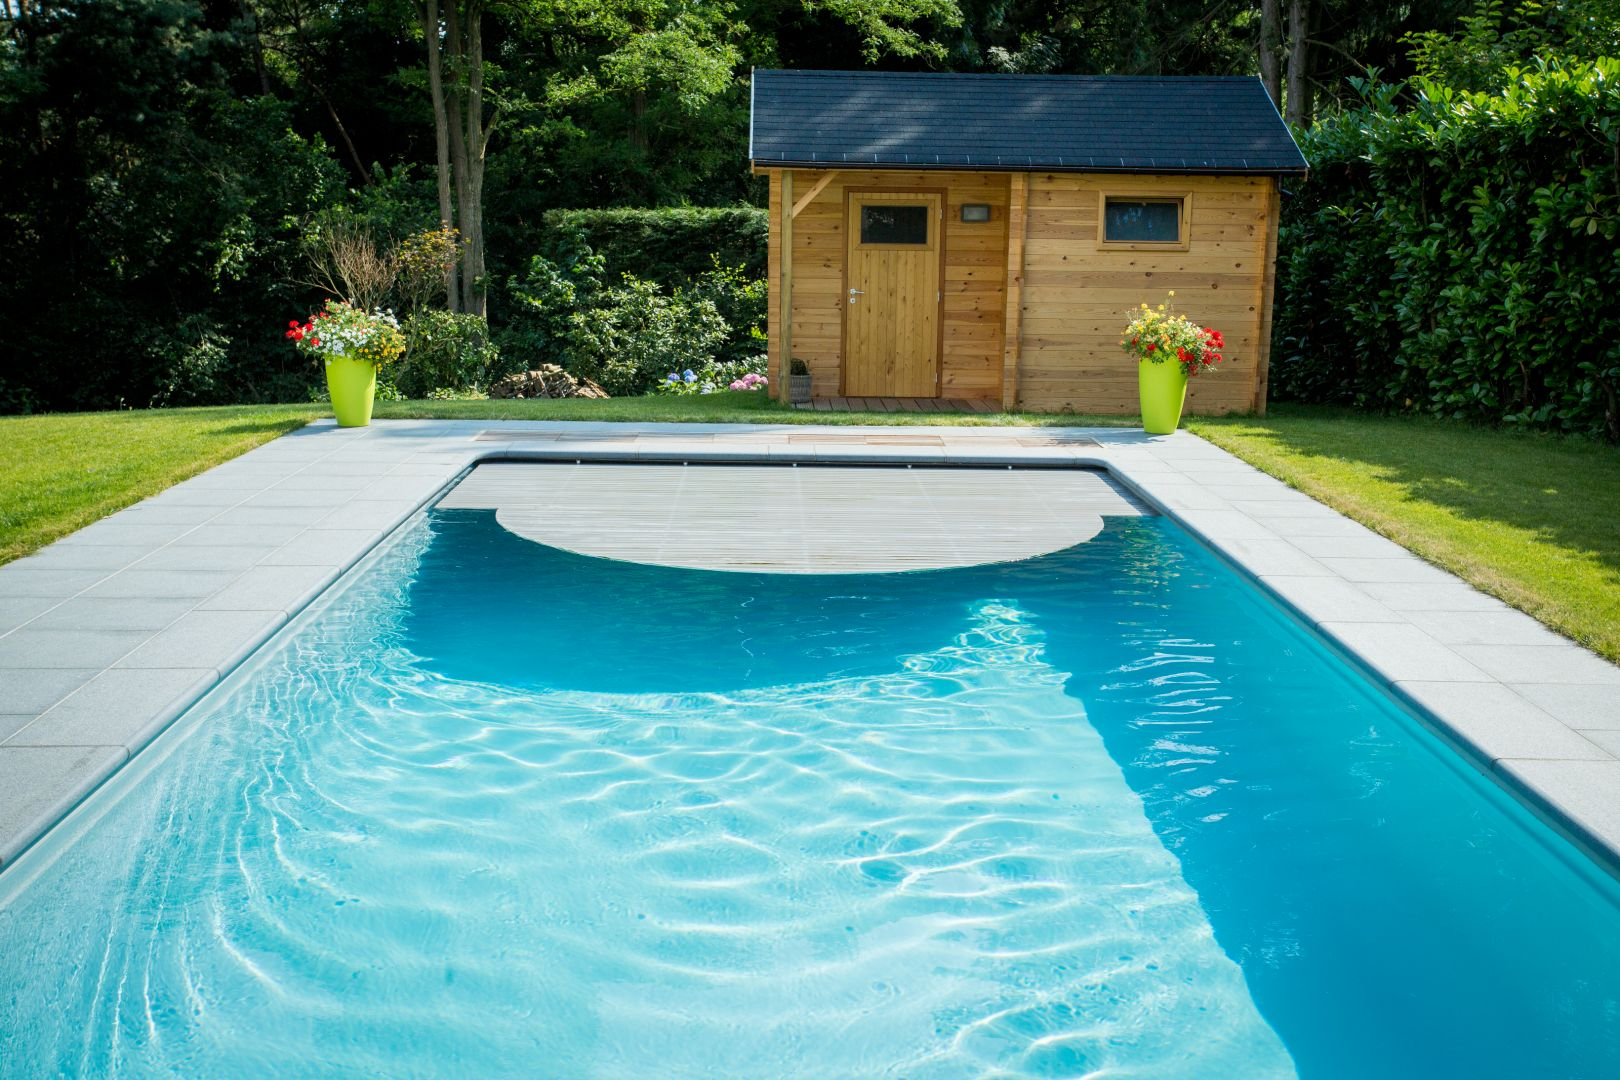 The Covrex 174 Classic Pool Cover Covrex 174 Pool Protection